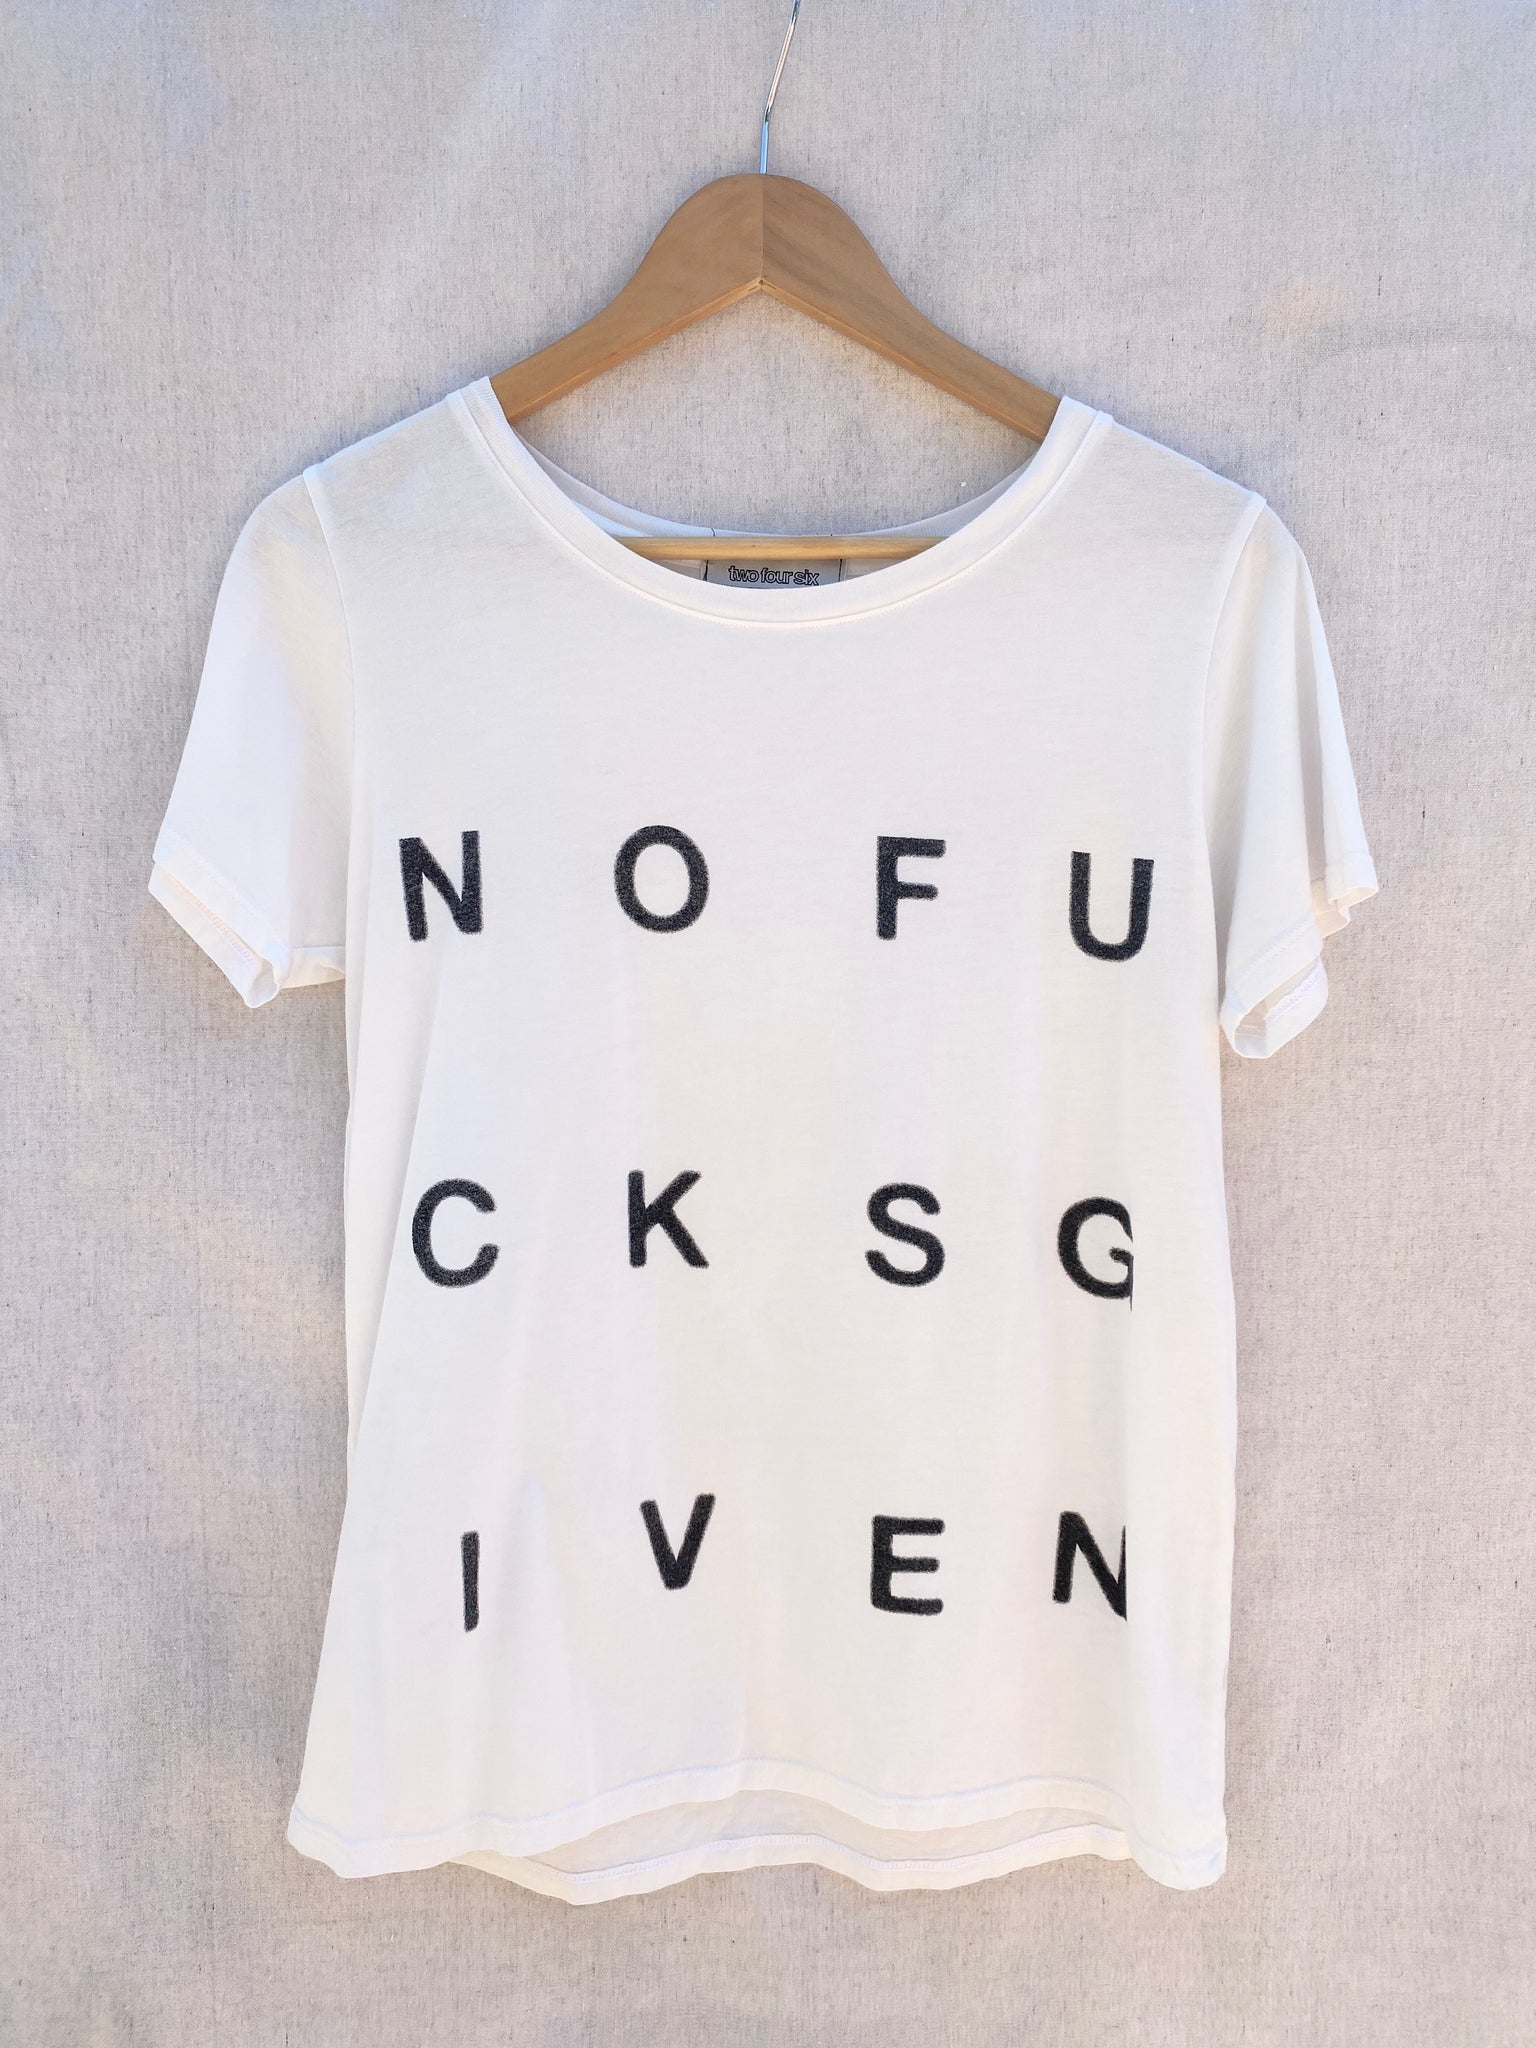 FULL FRONT VIEW OF TEE WITH NOFUCKSGIVEN PRINT ON IT.